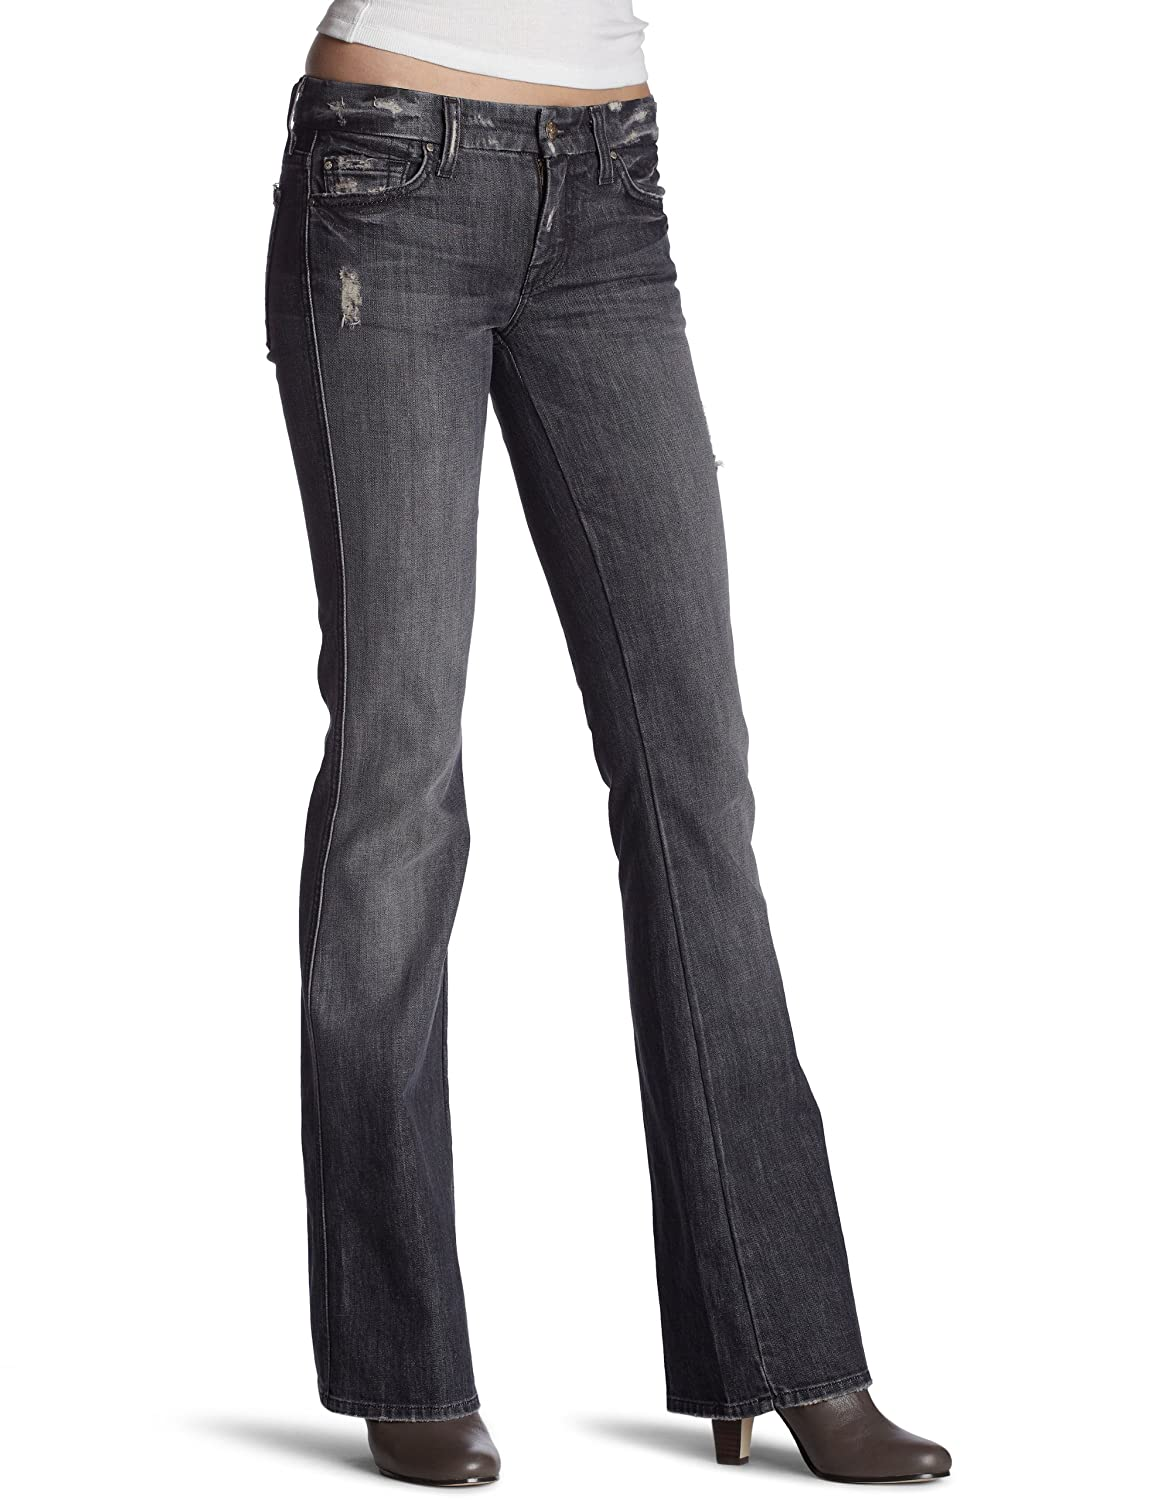 Vintage Port Lions 7 For All Mankind Women's Flare Wide Leg Jean